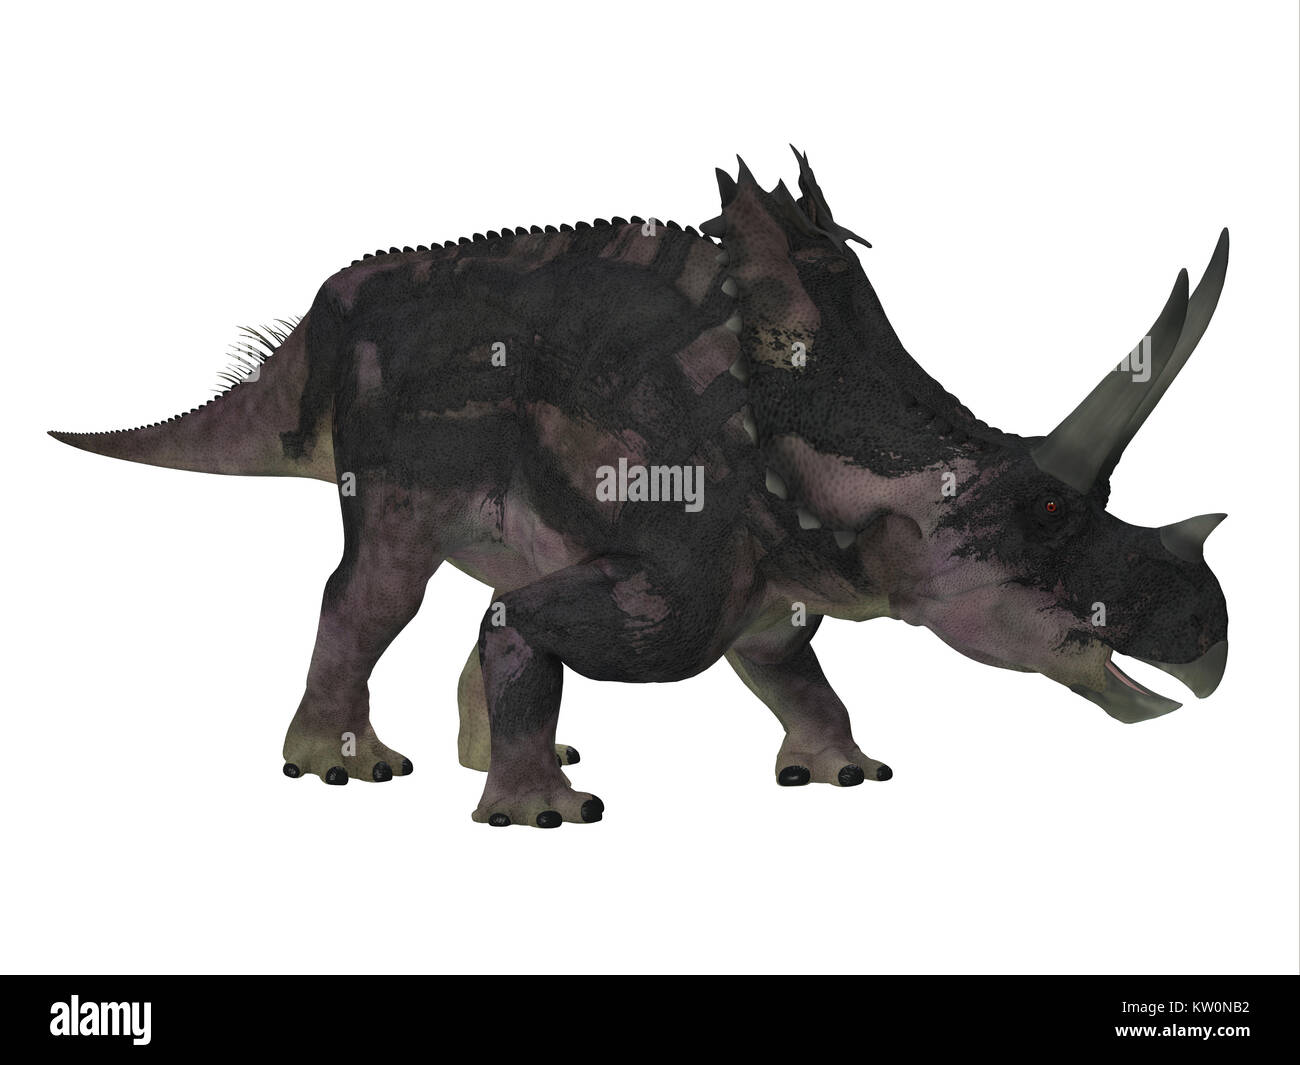 Agujaceratops Dinosaur Side Profile - Agujaceratops was a herbivorous ceratopsian dinosaur that lived in Texas, - Stock Image